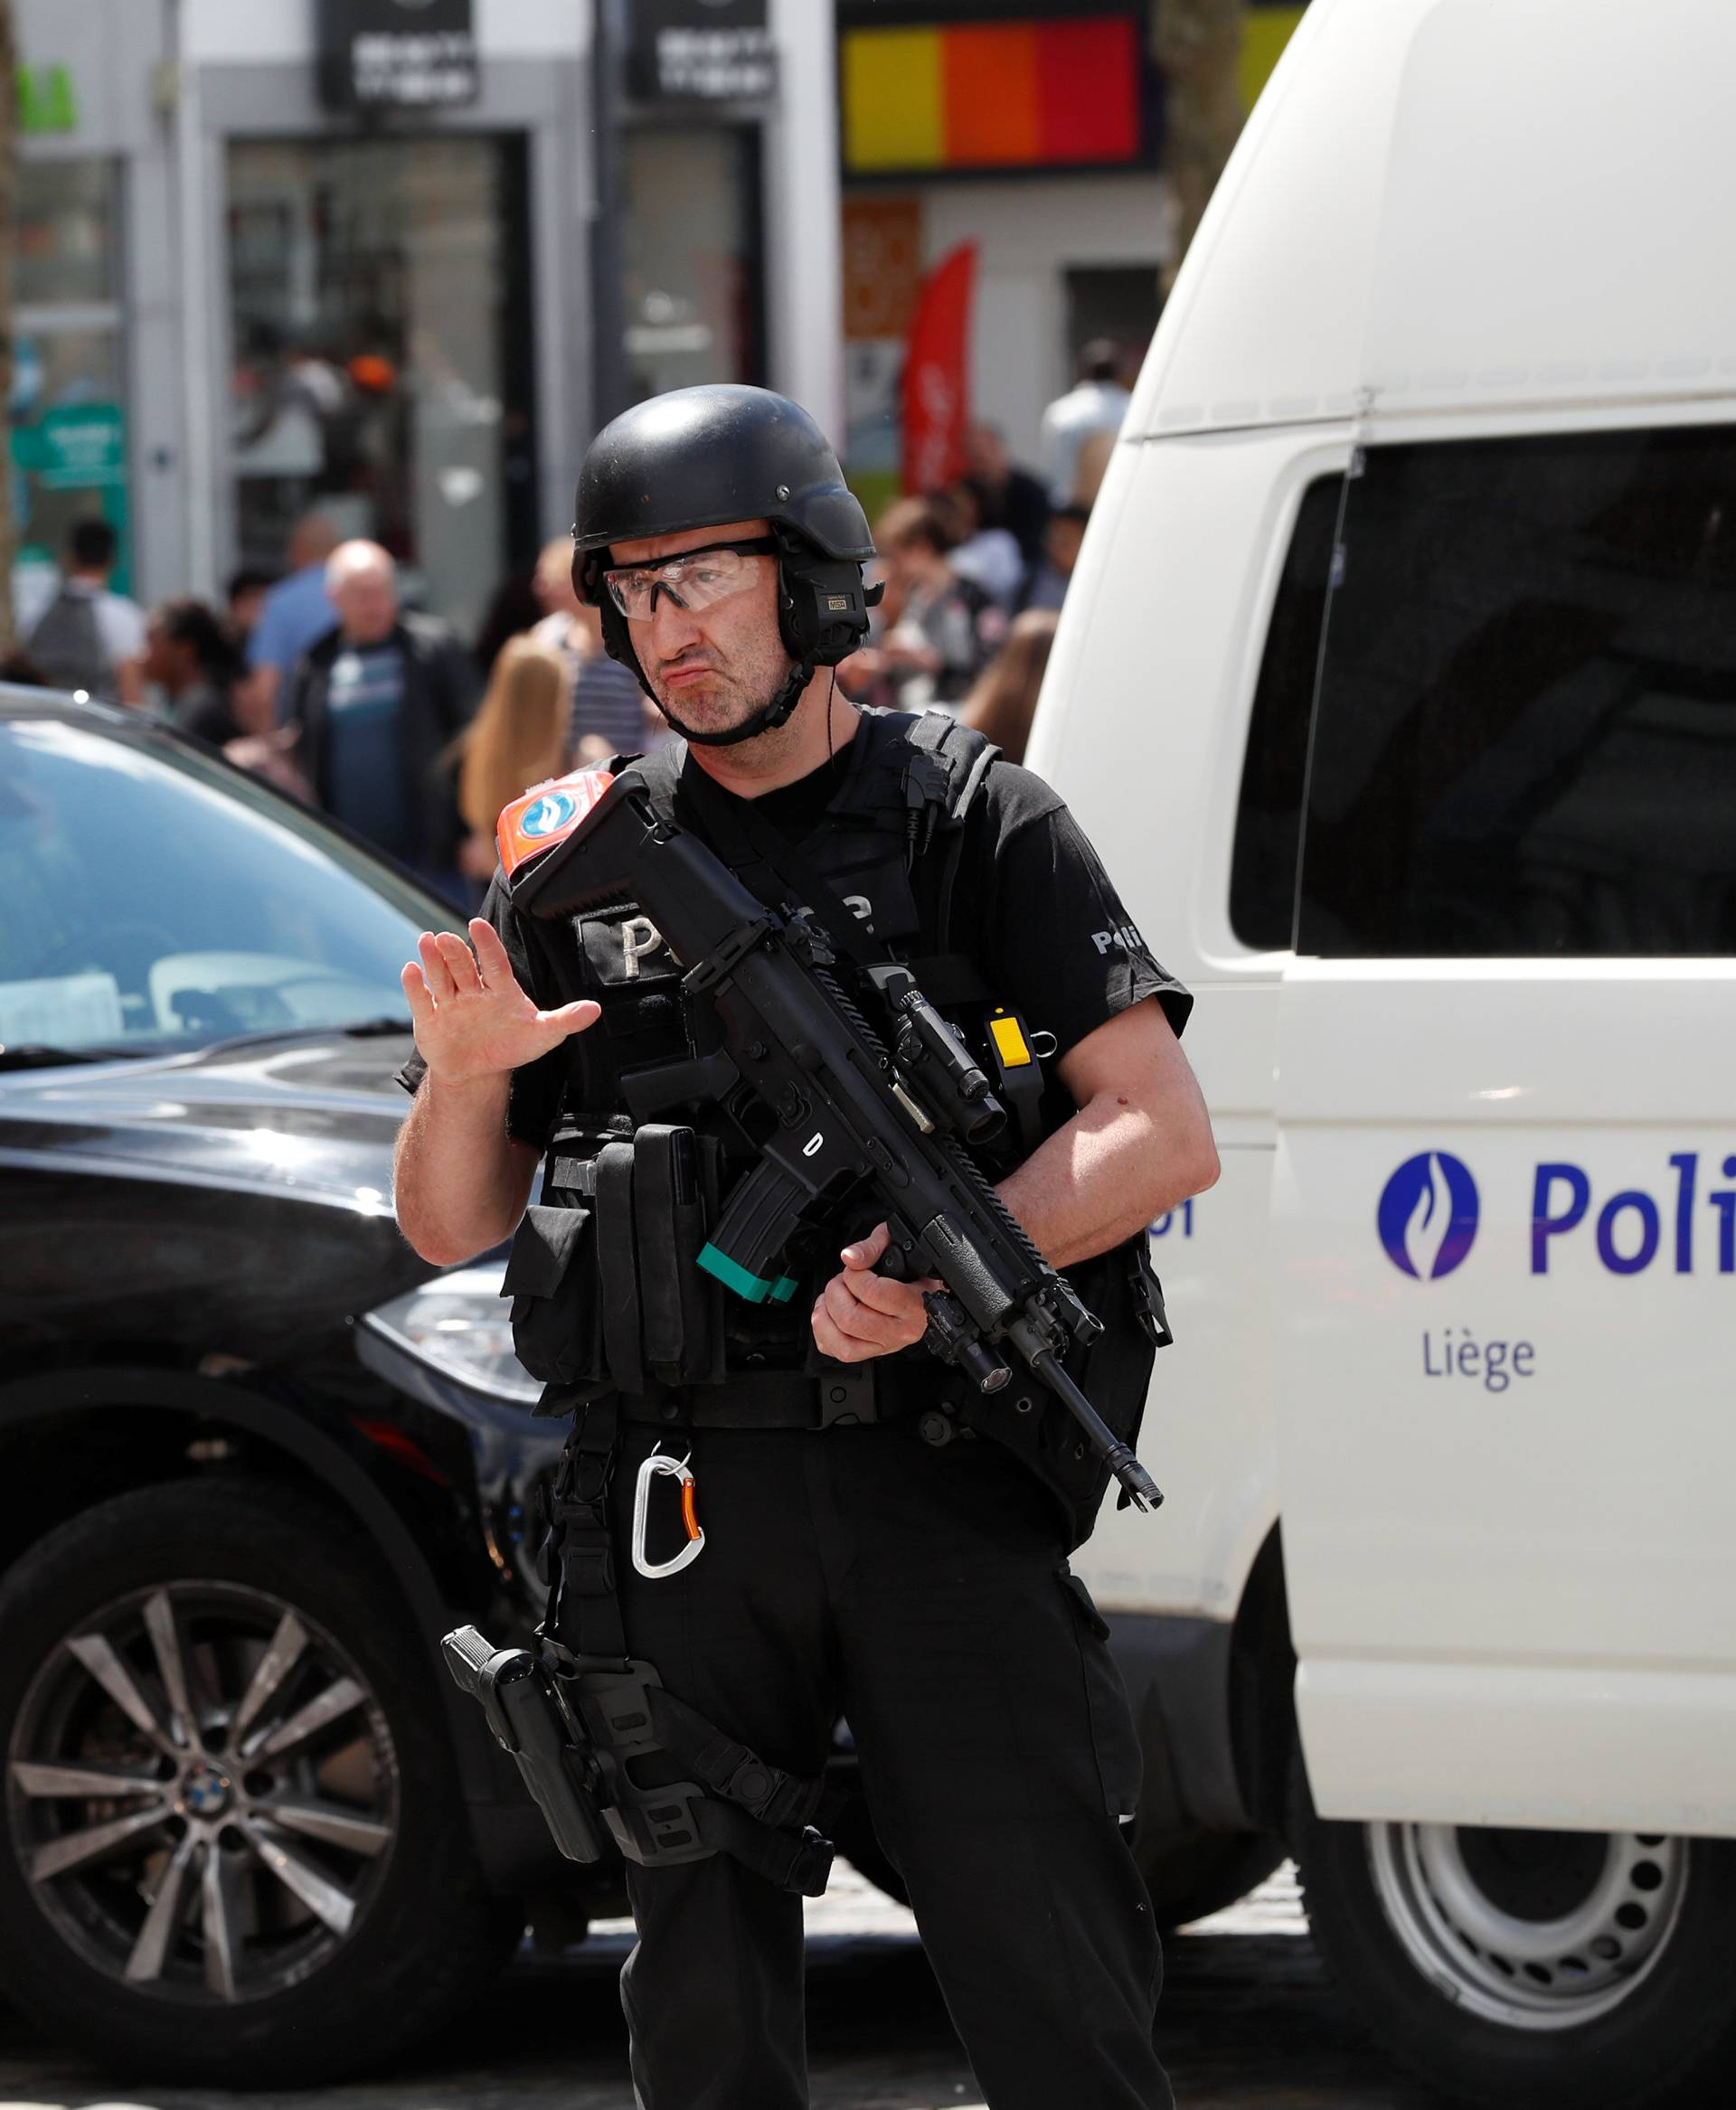 A member of the special police forcess gestures in Liege